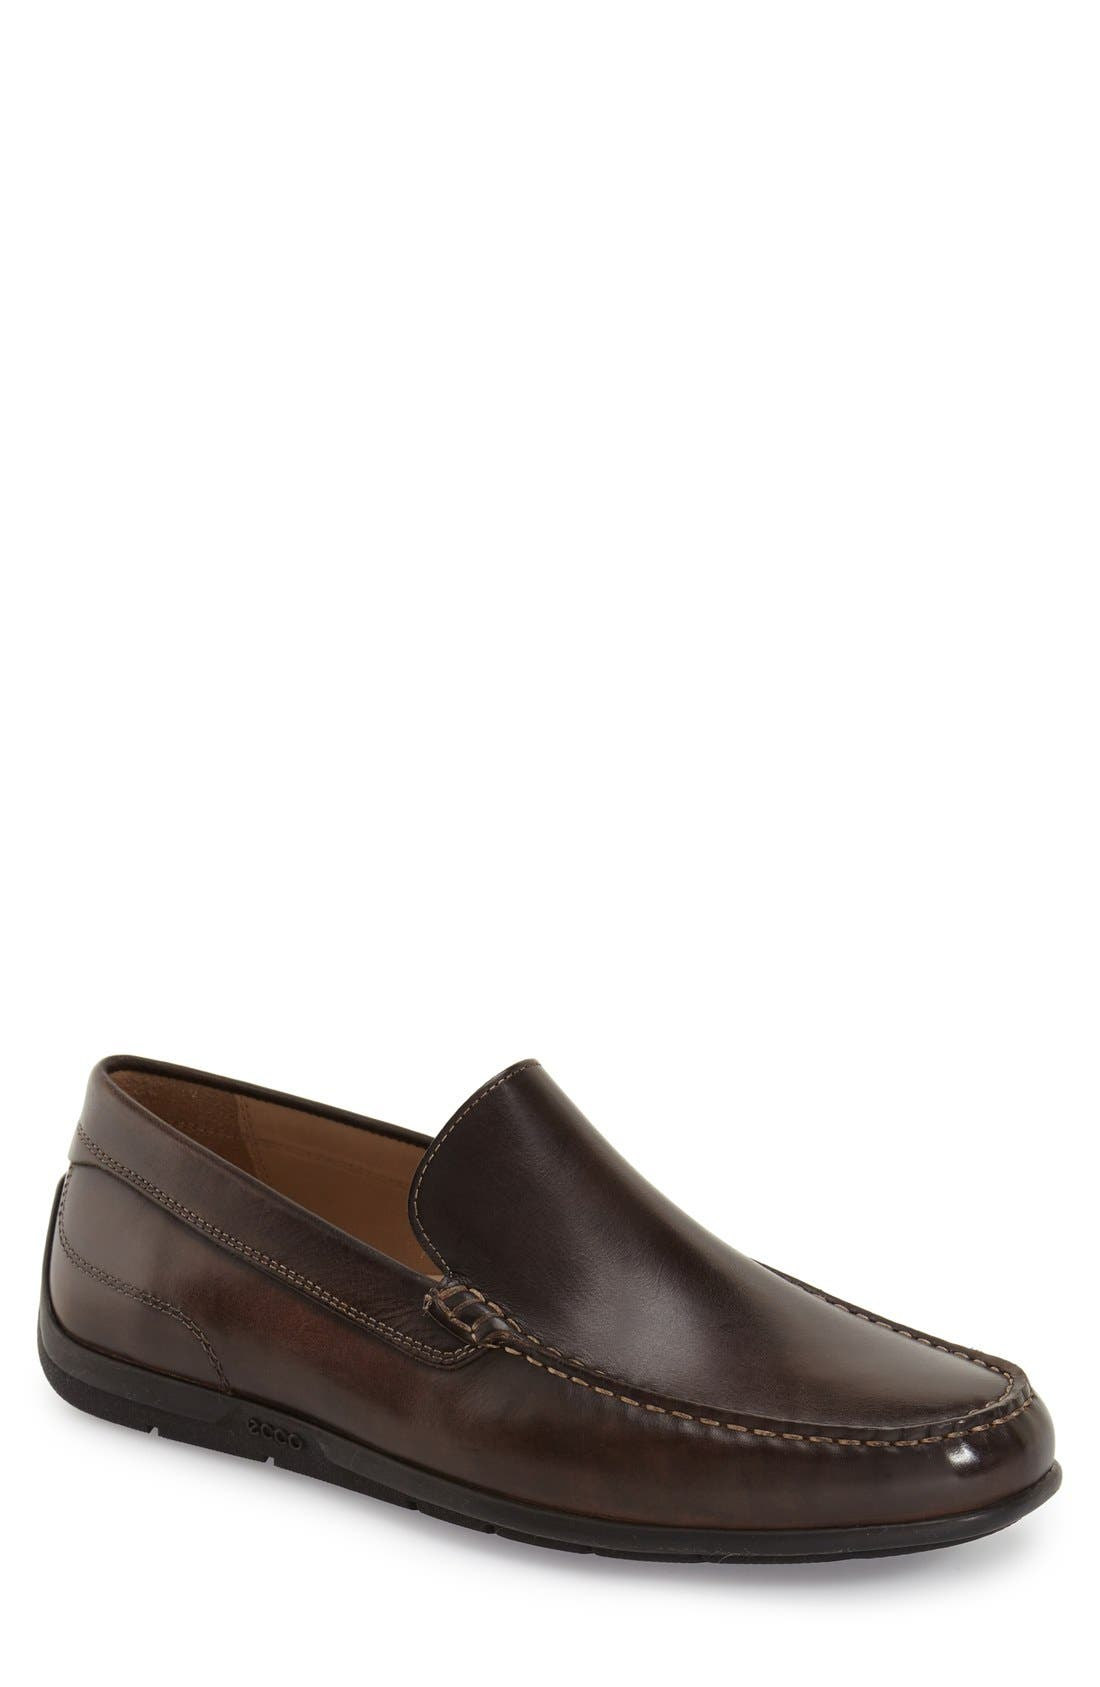 ECCO, 'Classic Moc II' Venetian Loafer, Main thumbnail 1, color, COFFEE LEATHER